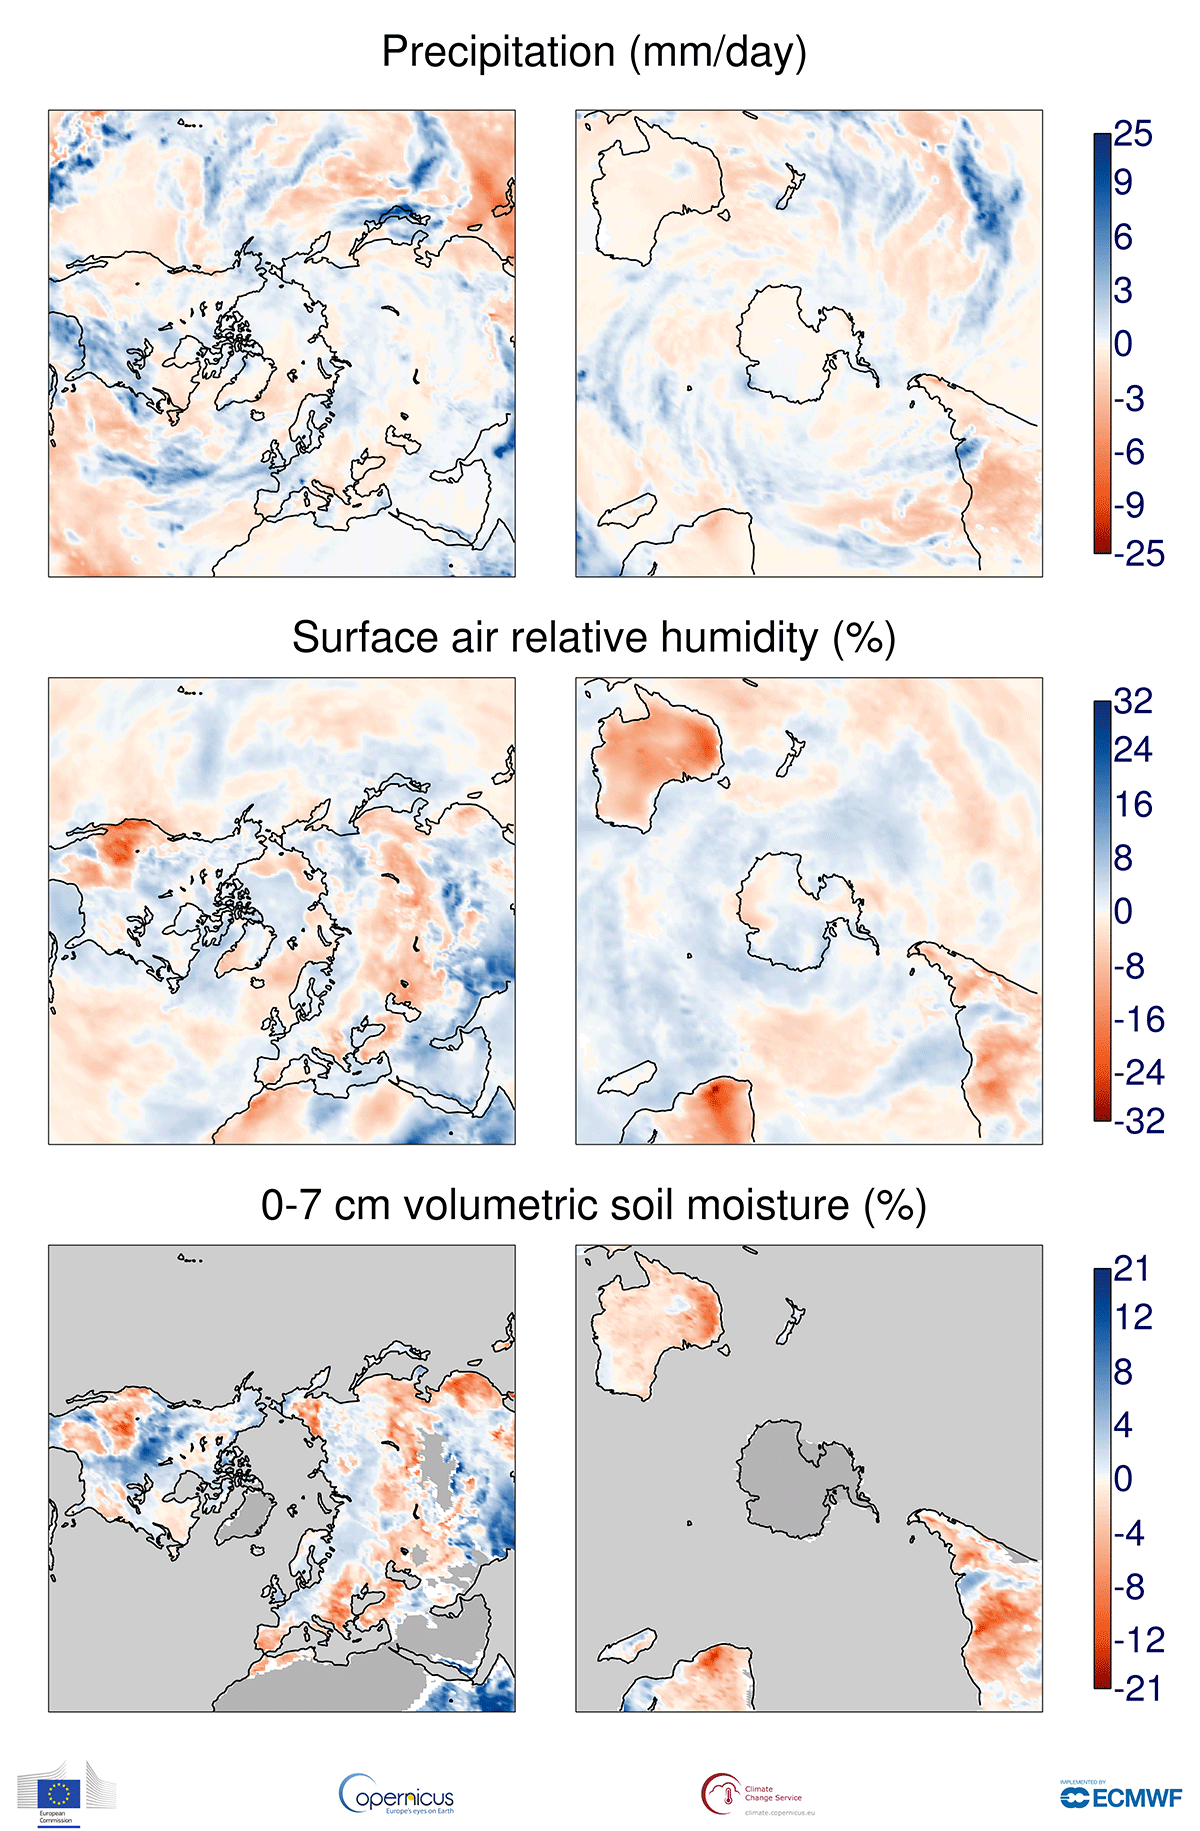 photo:Copernicus Climate Change Service/ECMWF;desc:Anomalies in precipitation, the relative humidity of surface air and the volumetric moisture content of the top 7 cm of soil for October 2019 with respect to October averages for the period 1981-2010. The darker grey shading denotes where soil moisture is not shown due to ice cover or climatologically low precipitation. Data source - ERA5